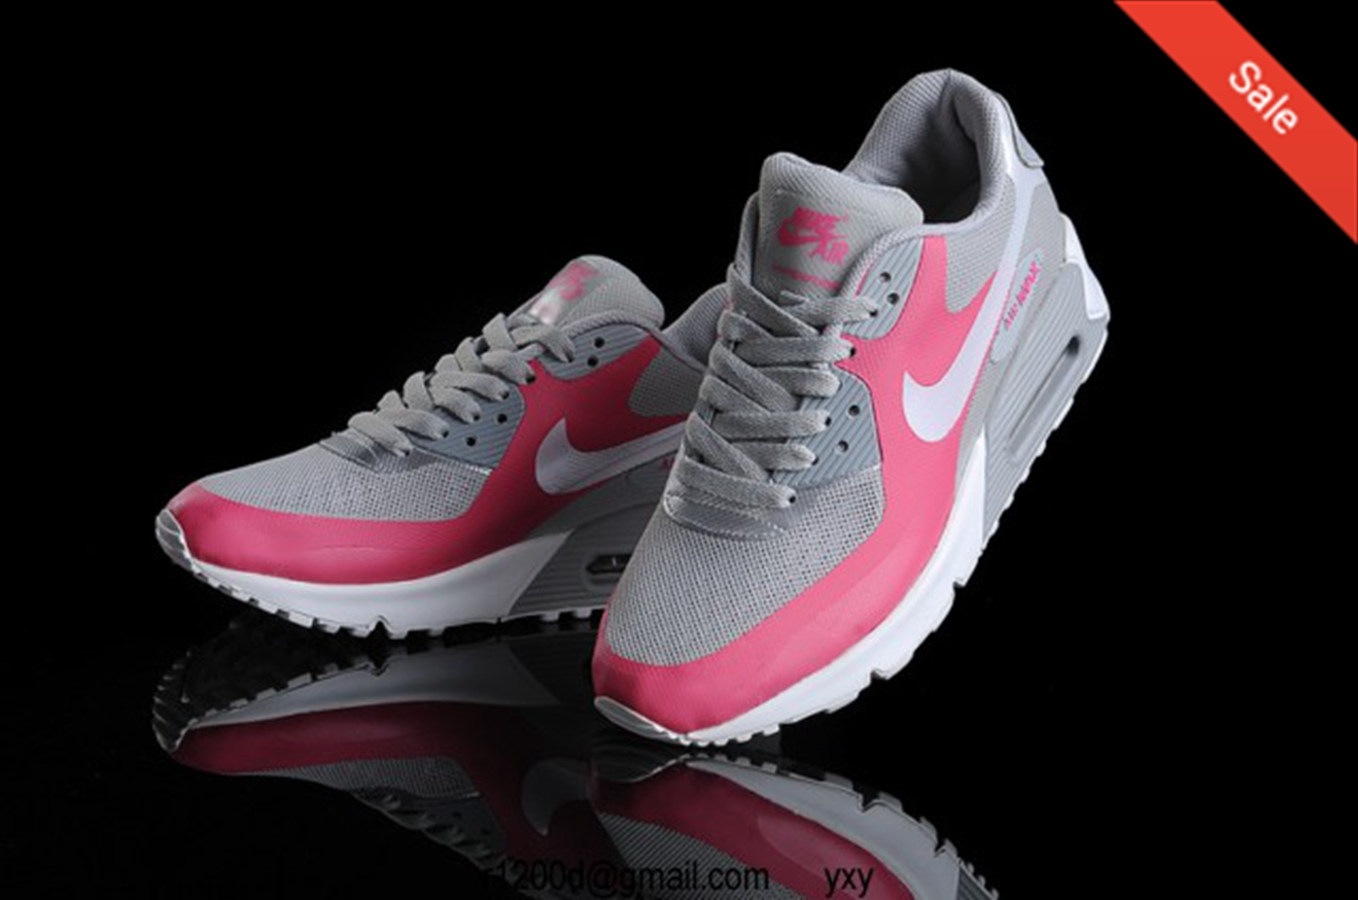 nike air max fille pas cher 38